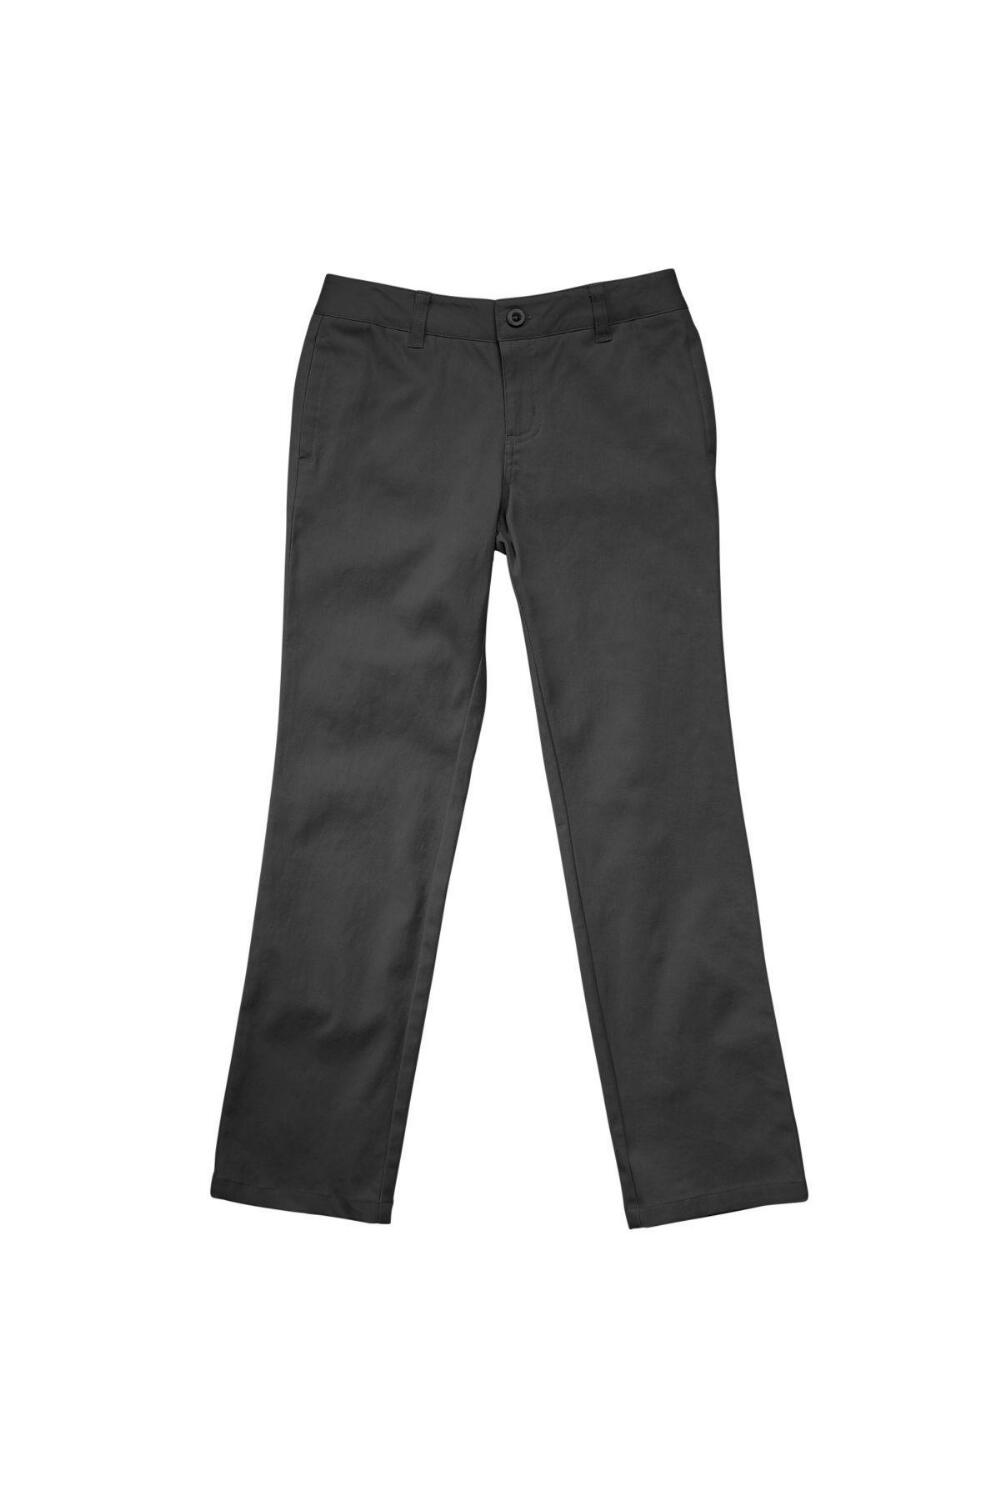 French Toast Girl's Straight Leg Twill Pant (Pant Color: Grey - SWCS, Pant Size: Size 4)